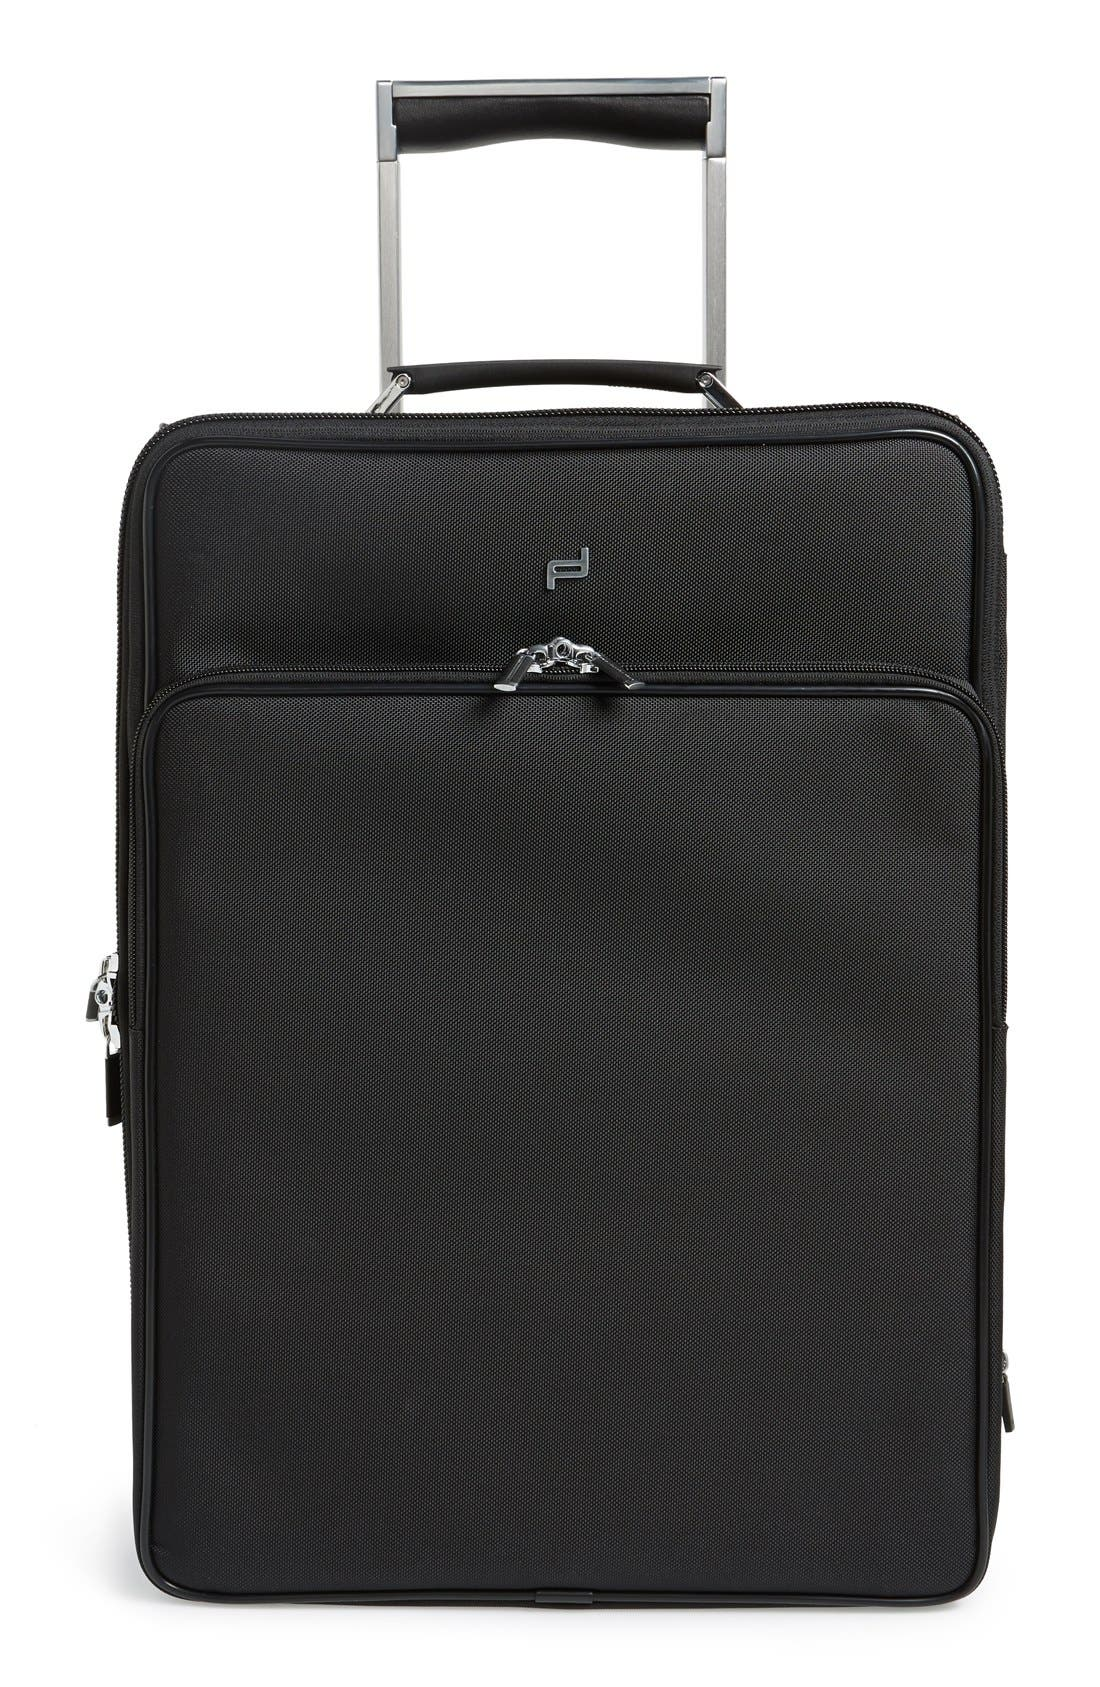 PORSCHE DESIGN Roadster 3.0 Wheeled Carry-On